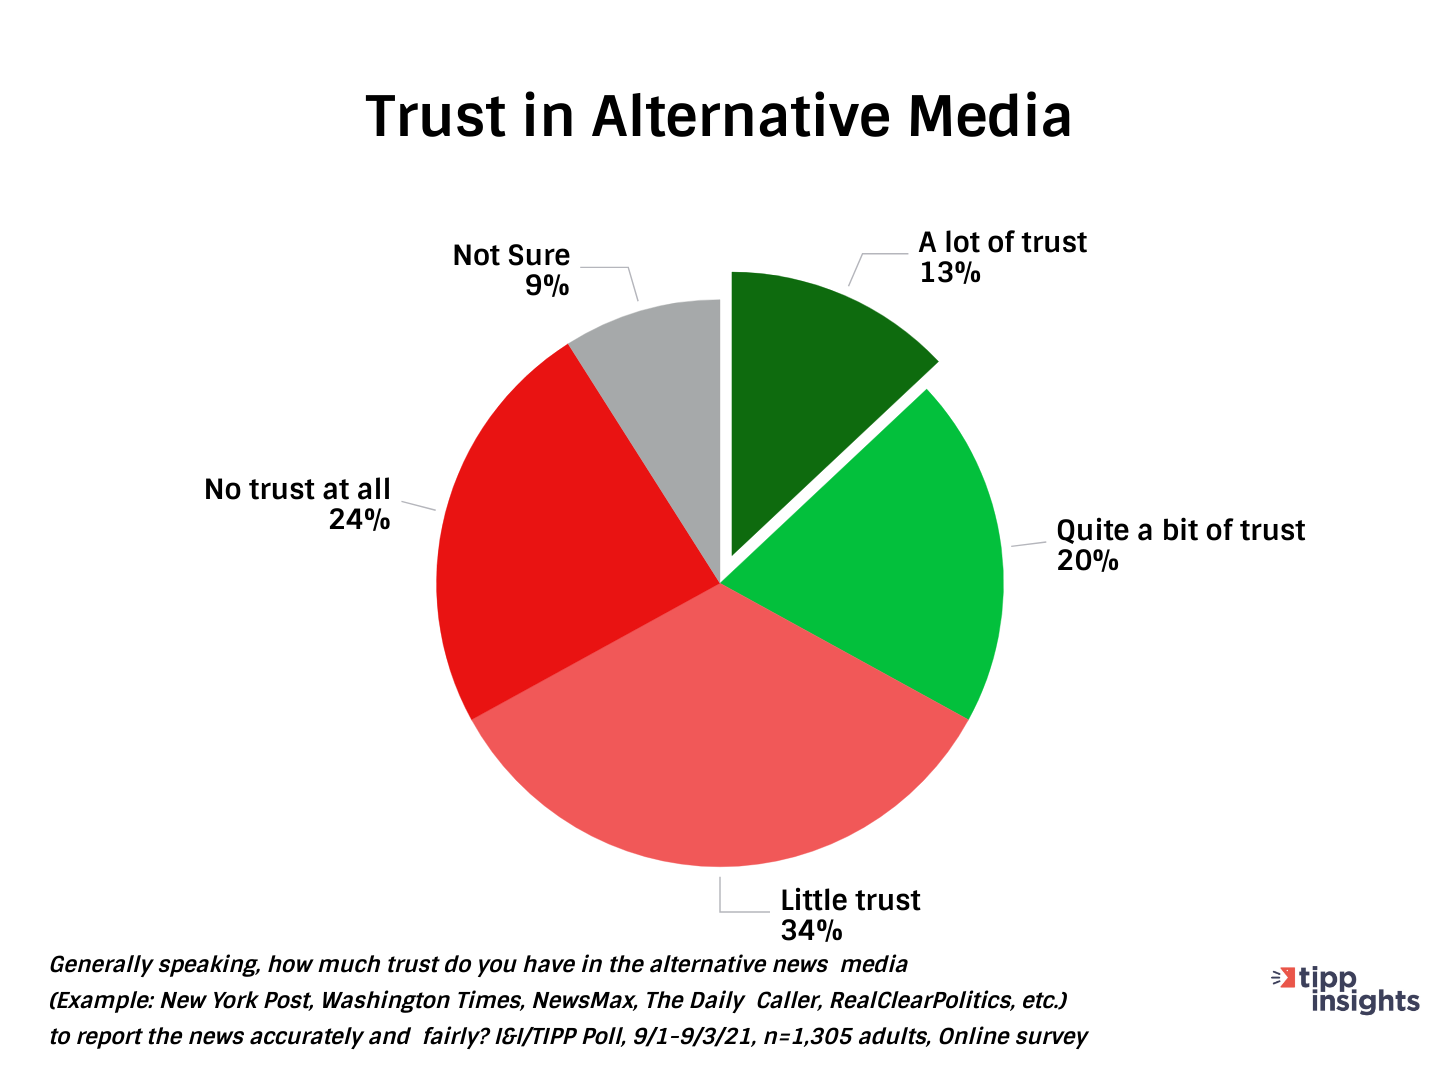 TIPP Poll Results: Americans and their Trust in Alternative Media